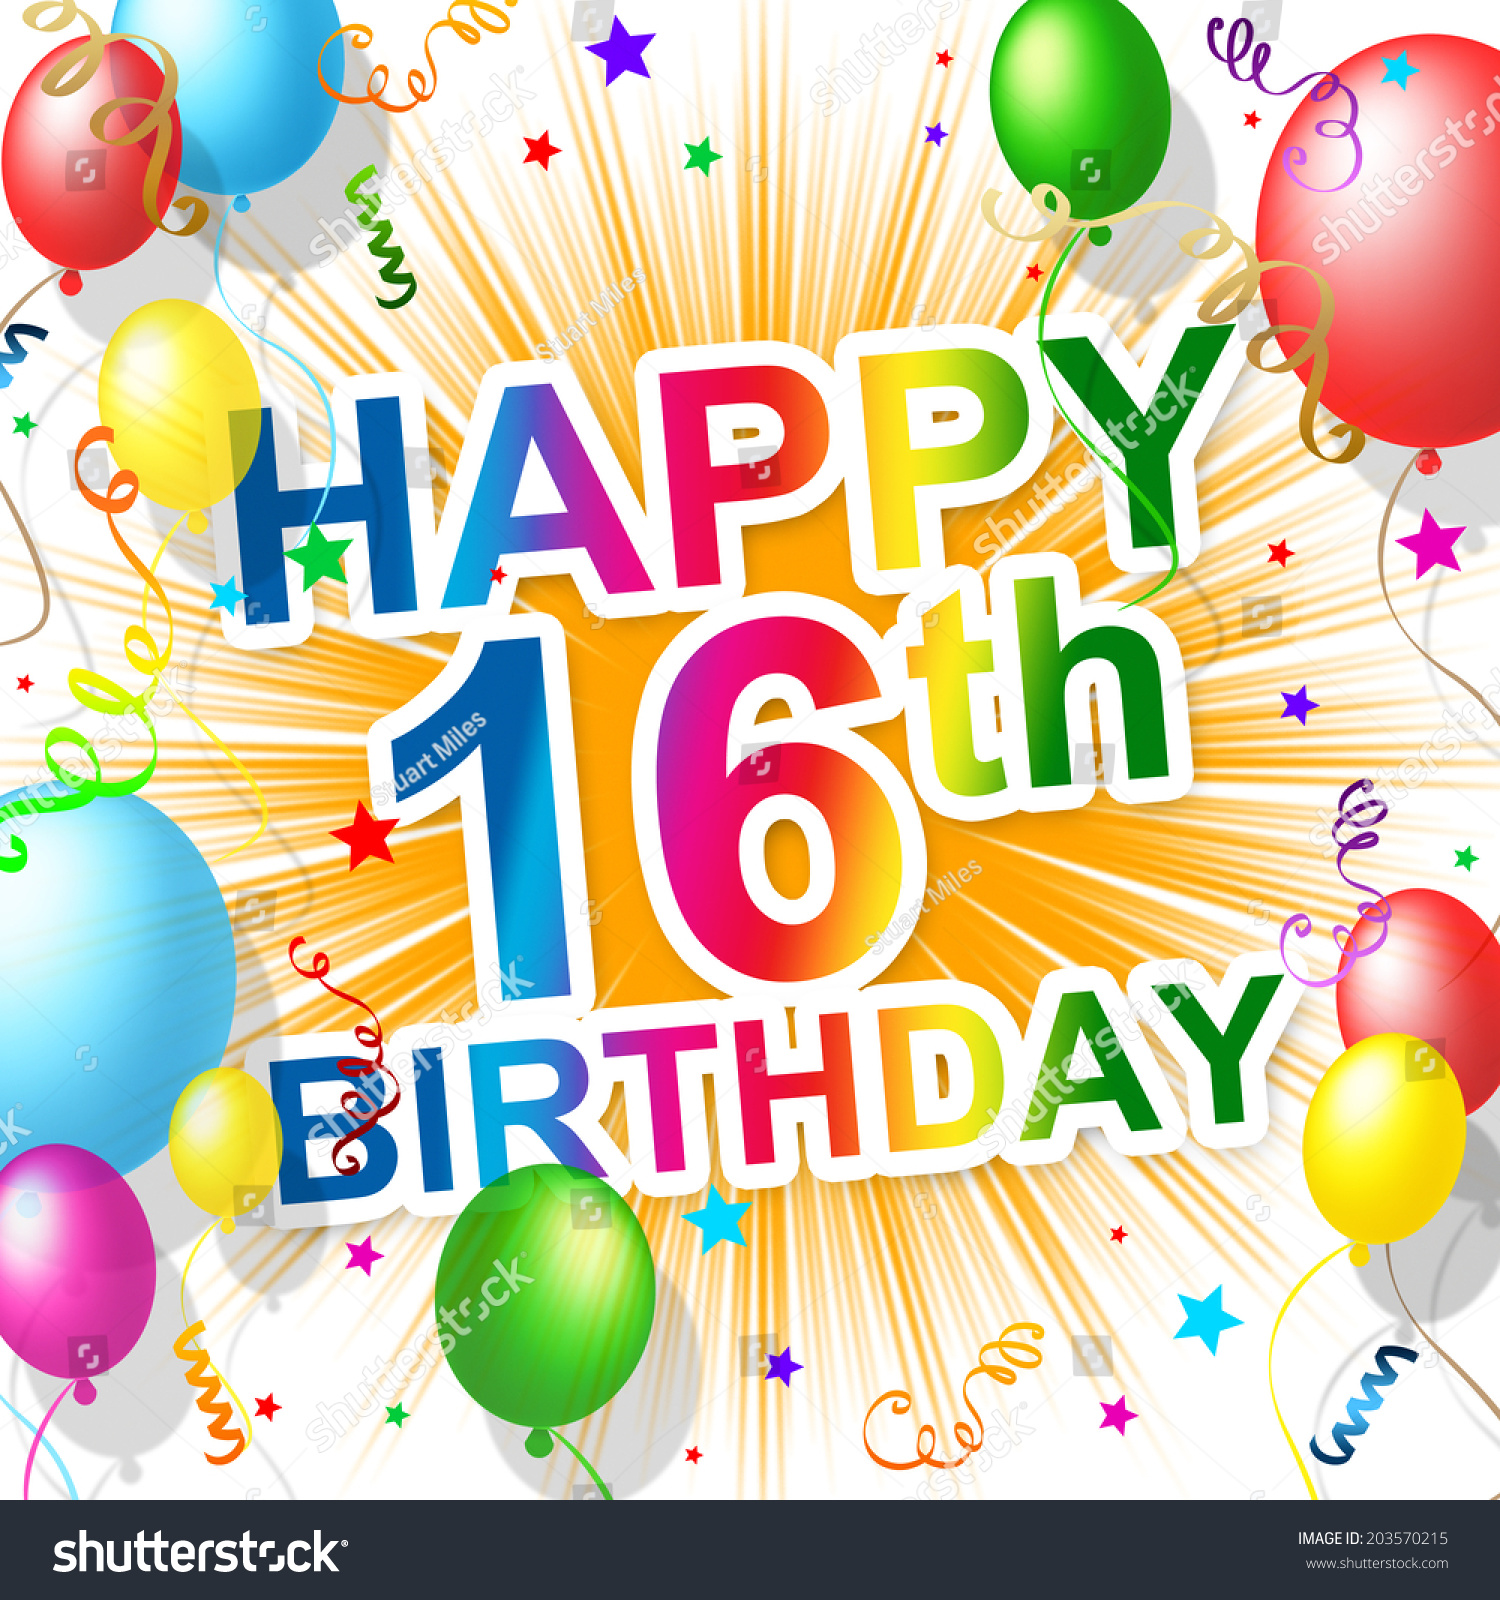 sixteenth birthday showing greetings party congratulation stock